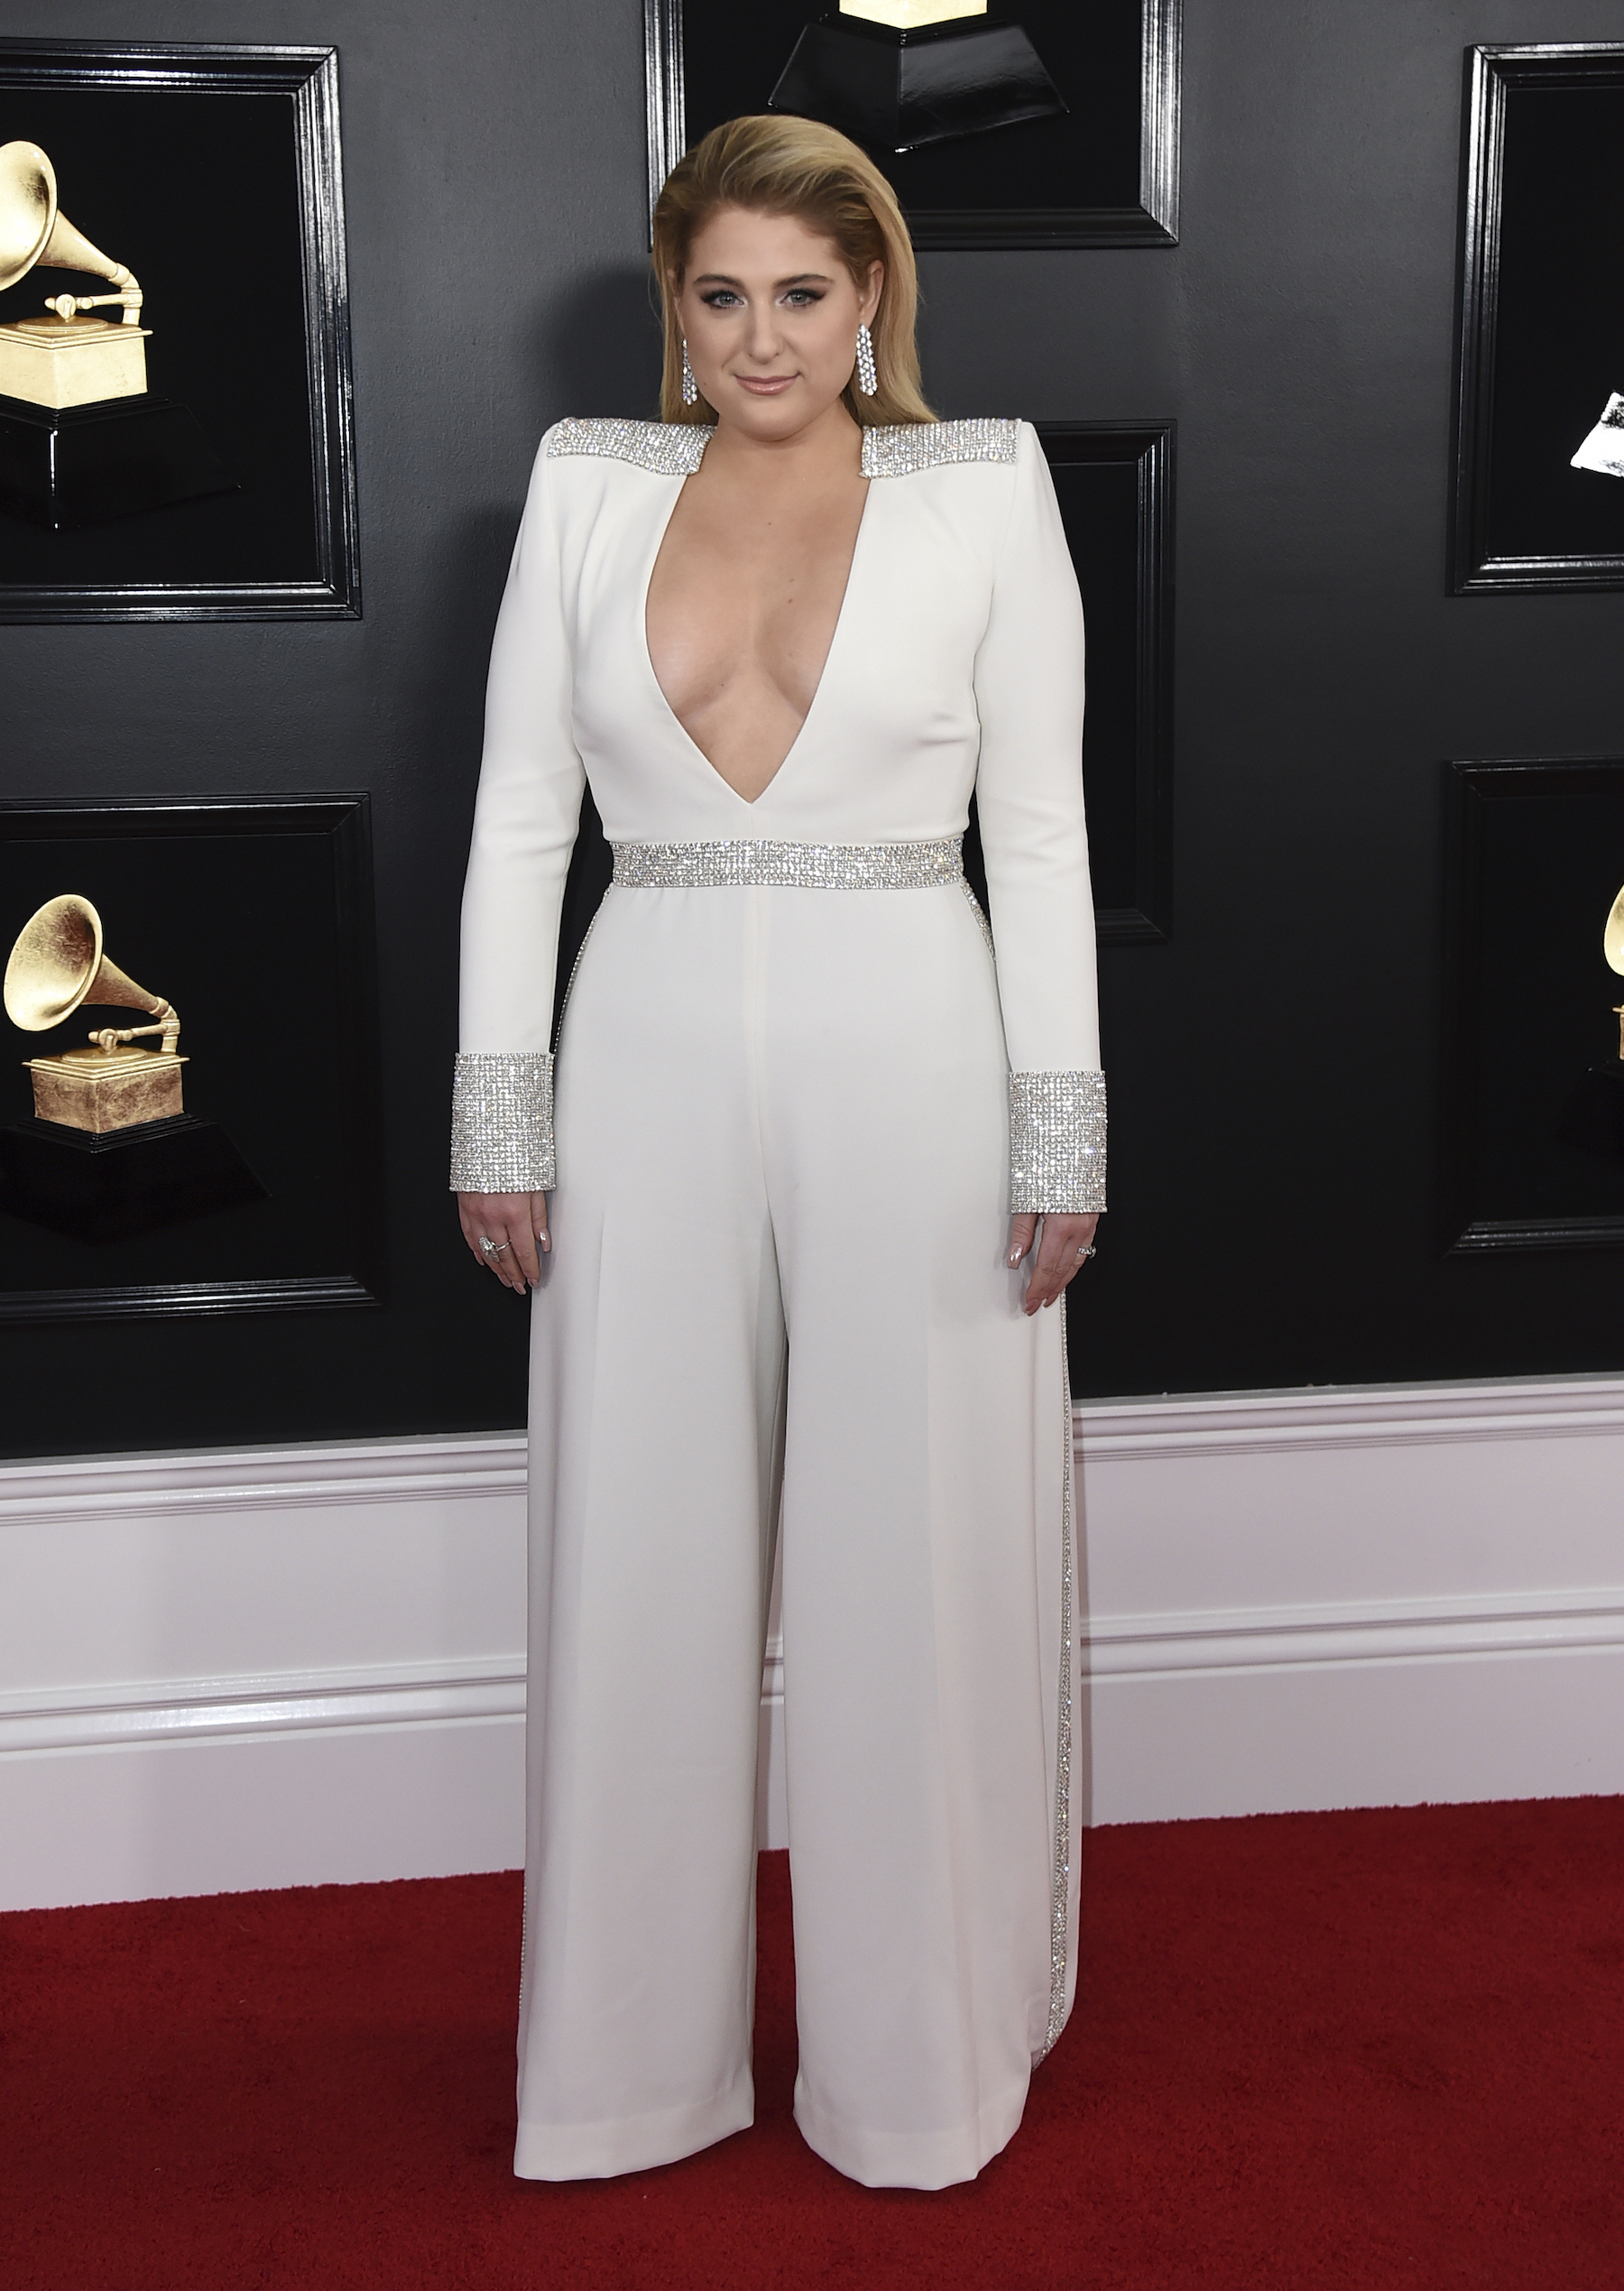 "<div class=""meta image-caption""><div class=""origin-logo origin-image ap""><span>AP</span></div><span class=""caption-text"">Meghan Trainor arrives at the 61st annual Grammy Awards at the Staples Center on Sunday, Feb. 10, 2019, in Los Angeles. (Jordan Strauss/Invision/AP)</span></div>"